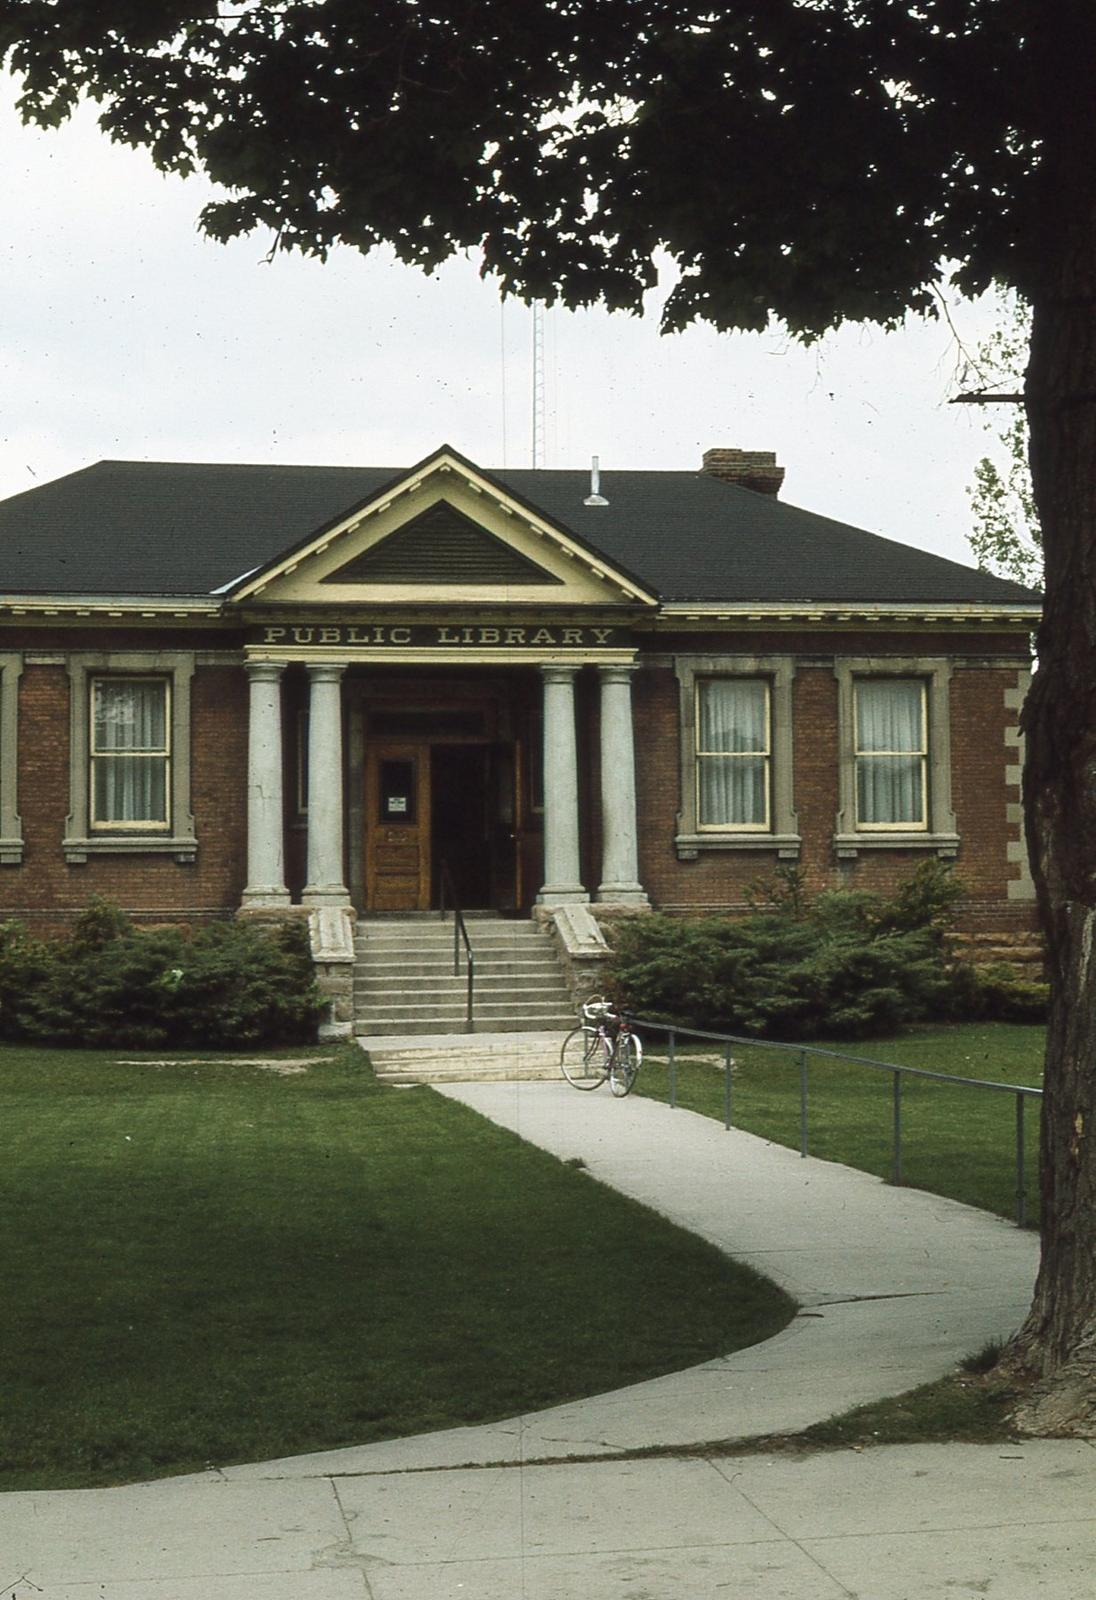 Exterior of Carnegie library, front with walking path